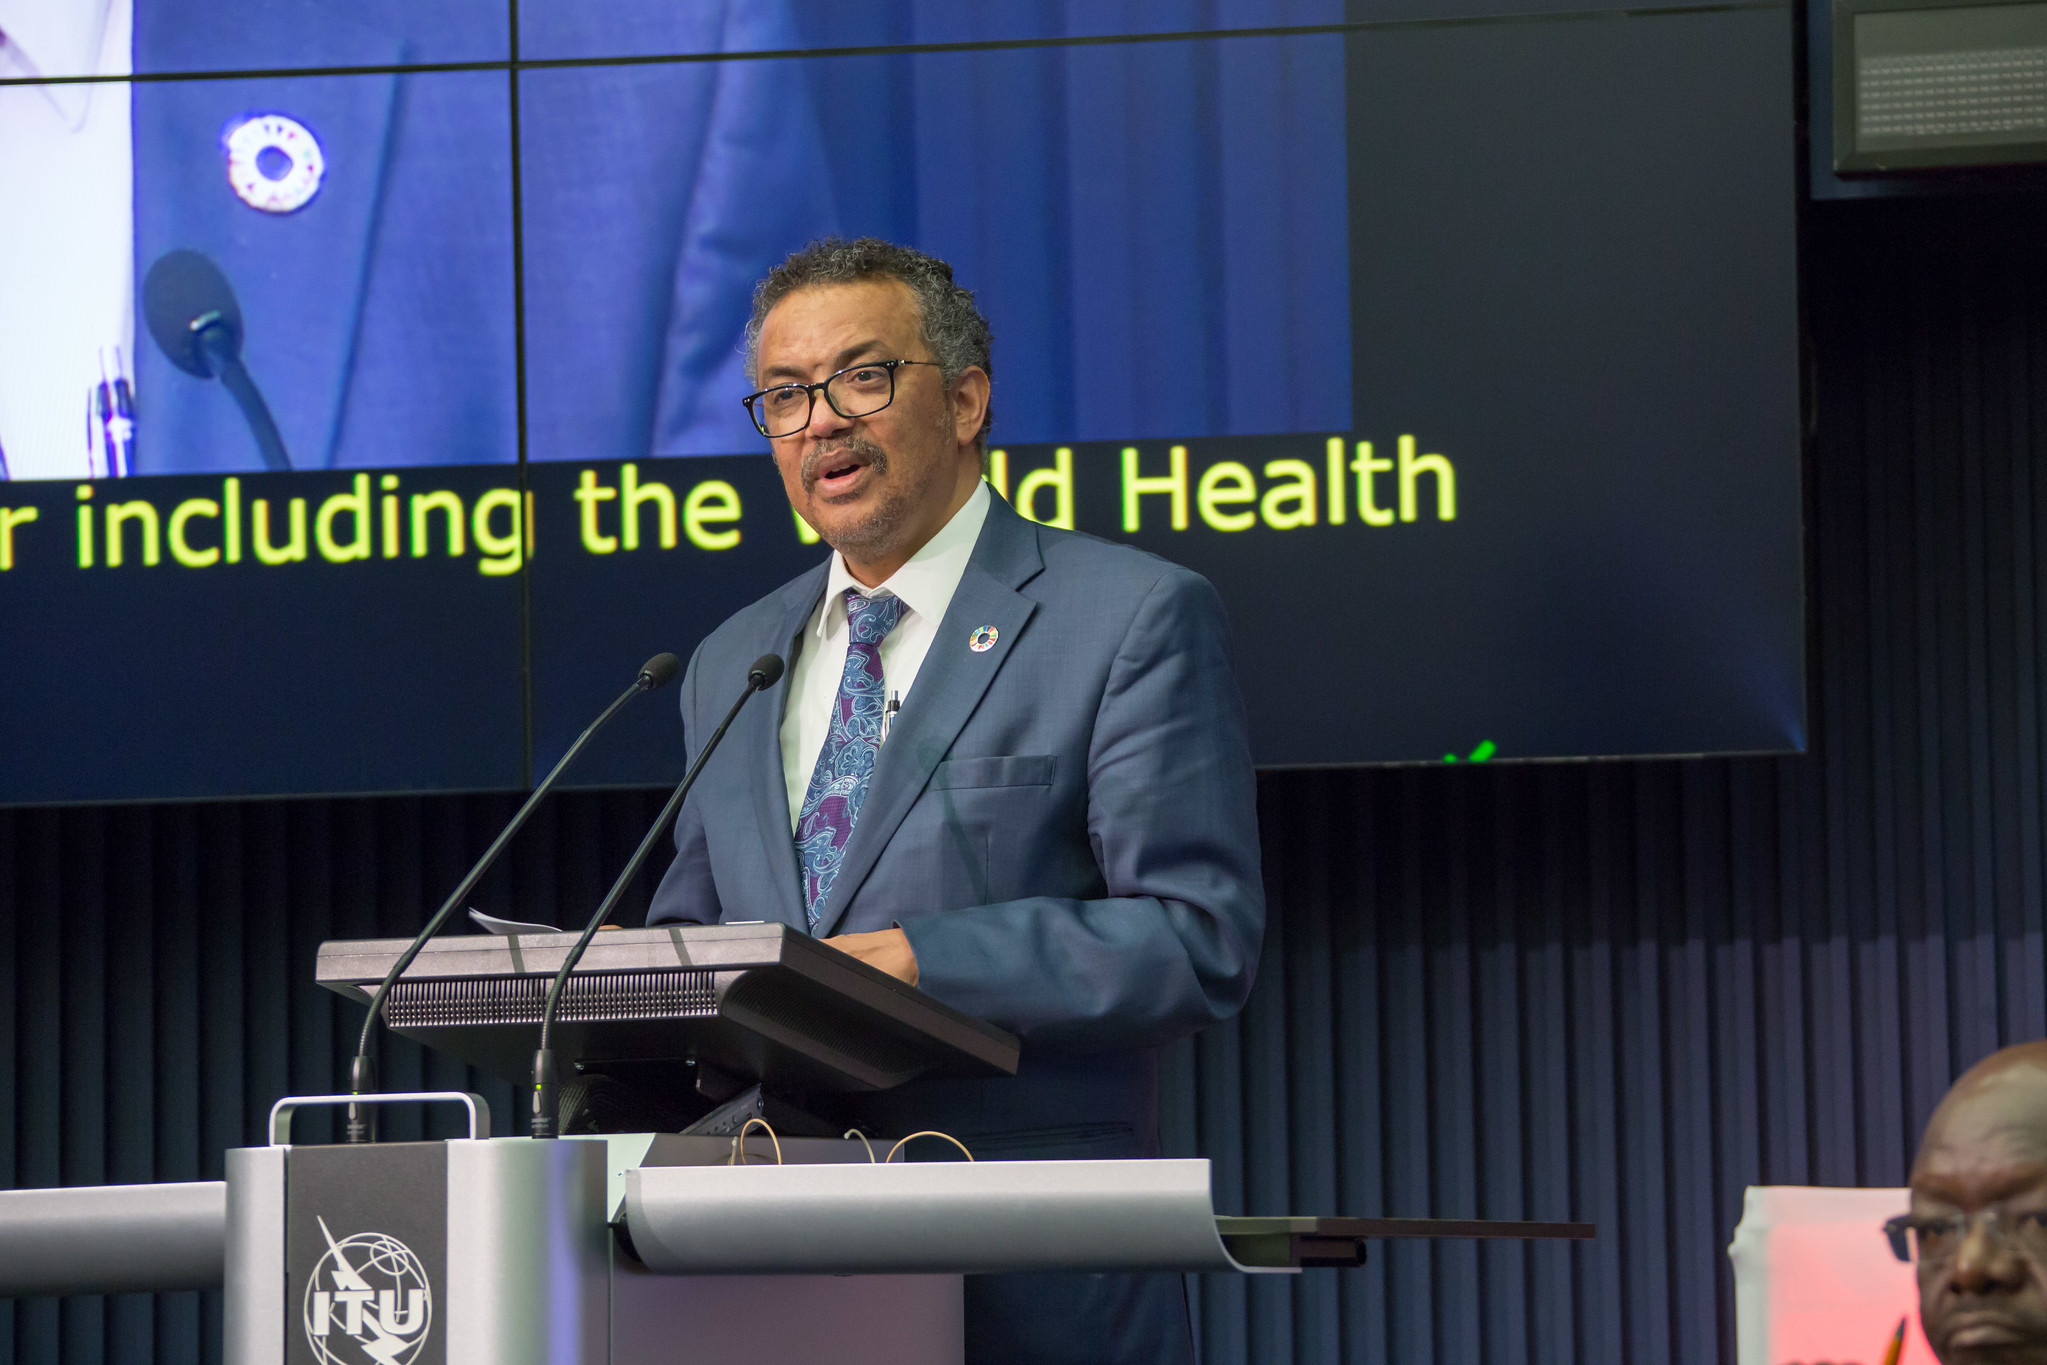 World Health Organization Director Again Parrots Chinese Propaganda In Anti-Taiwan Tirade